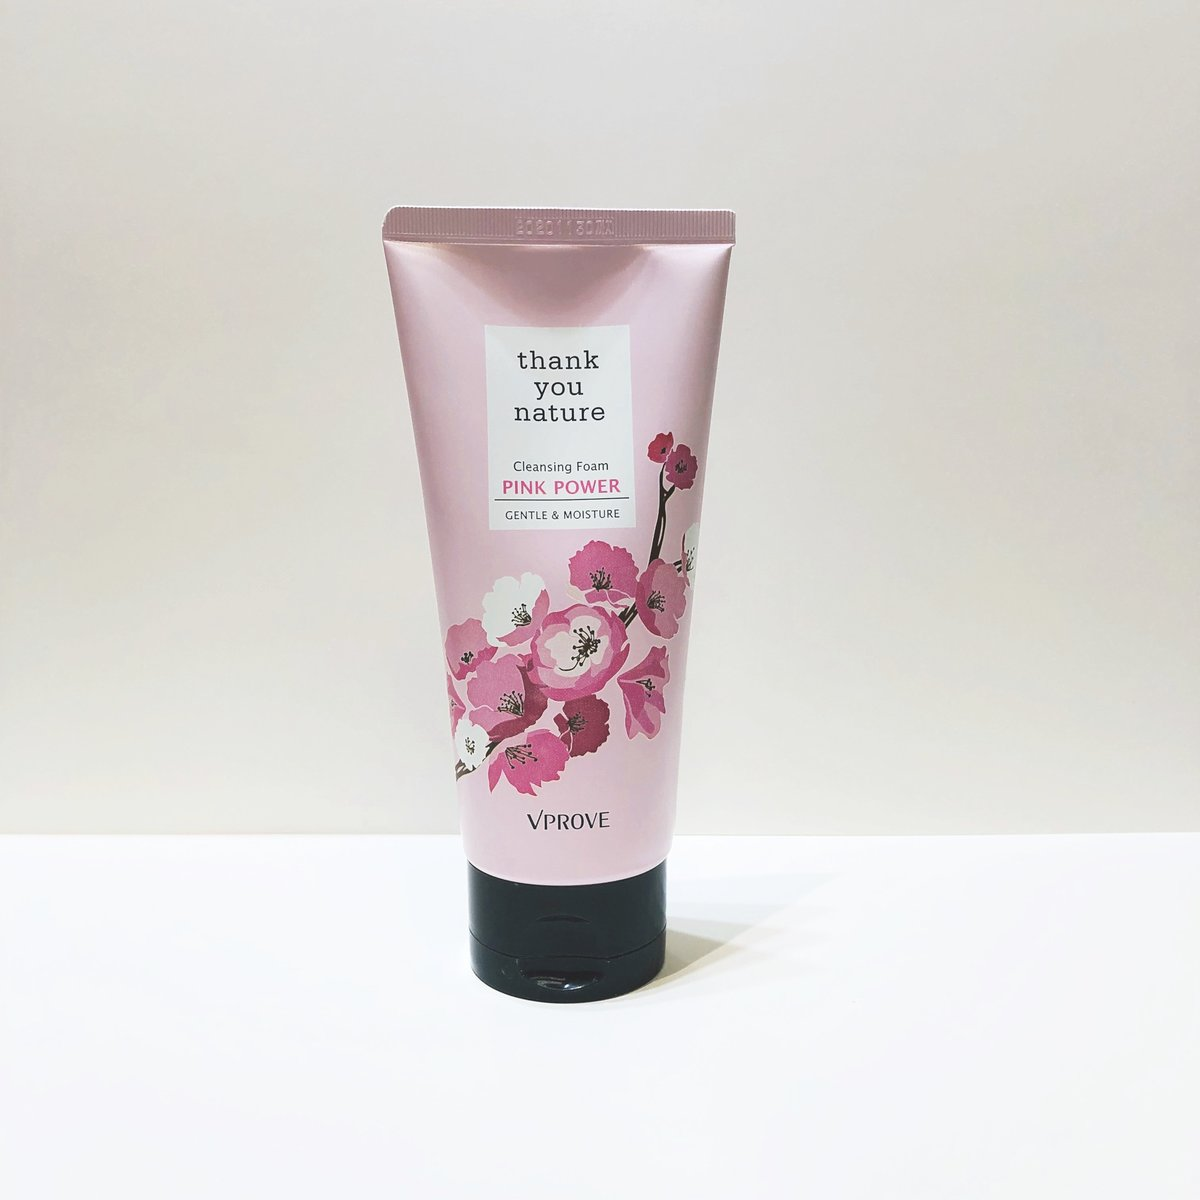 Thank You Nature Pink Power Cleansing Foam (Special Edition) 【Parallel Import】